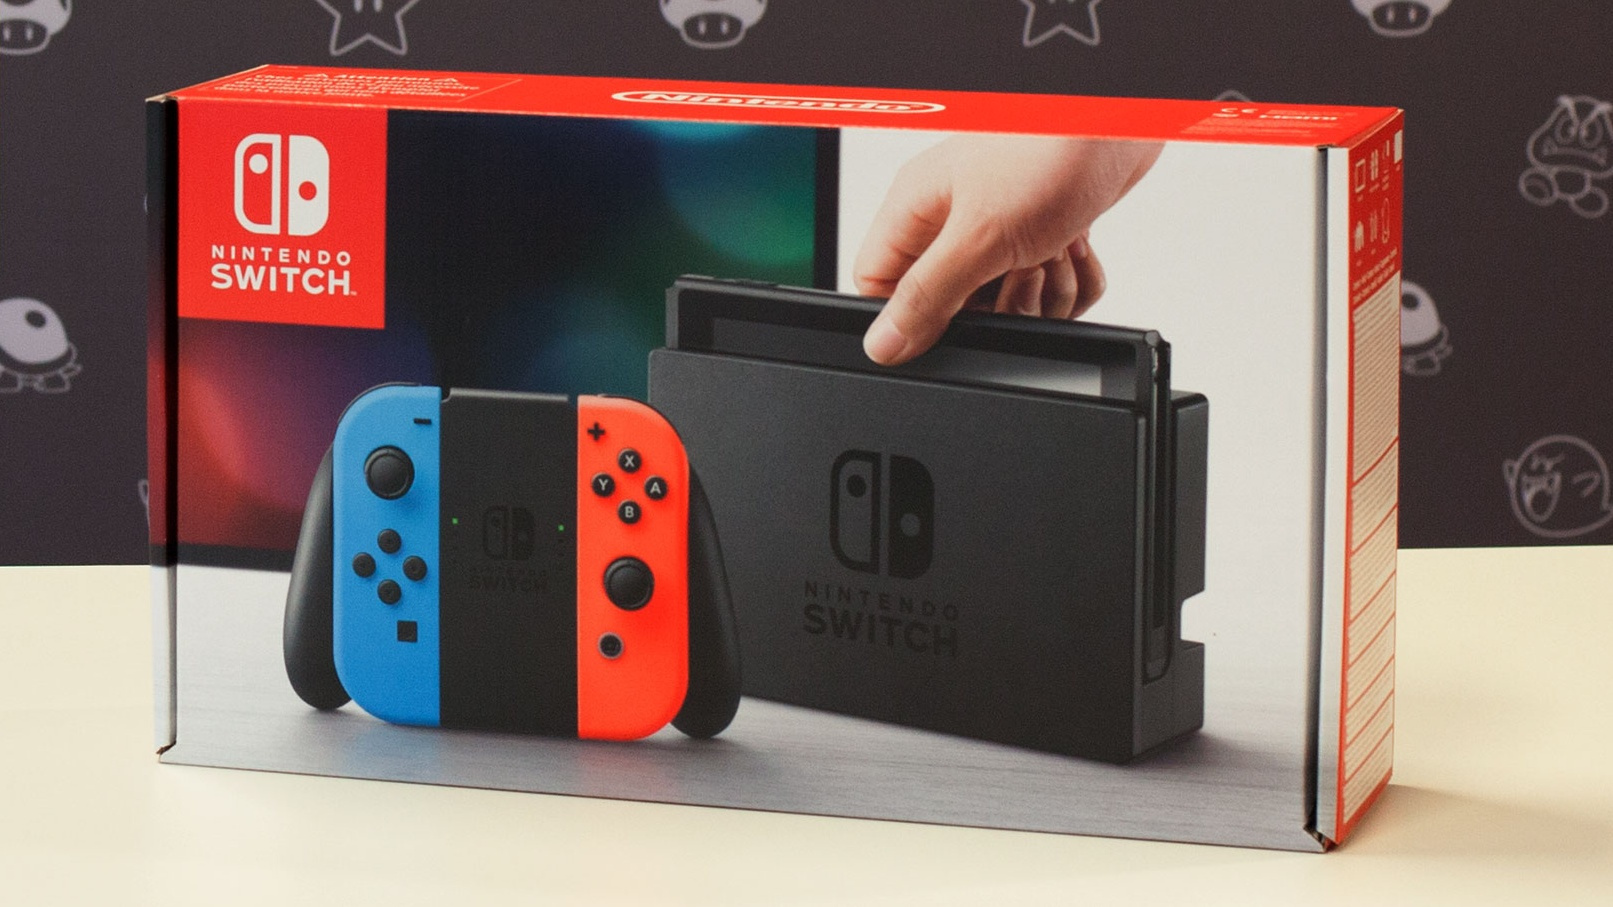 b884329b102d We do love to have a good browse for Nintendo-related products now and  then, sometimes coming across some not-to-be-missed deals, but we've never  seen ...